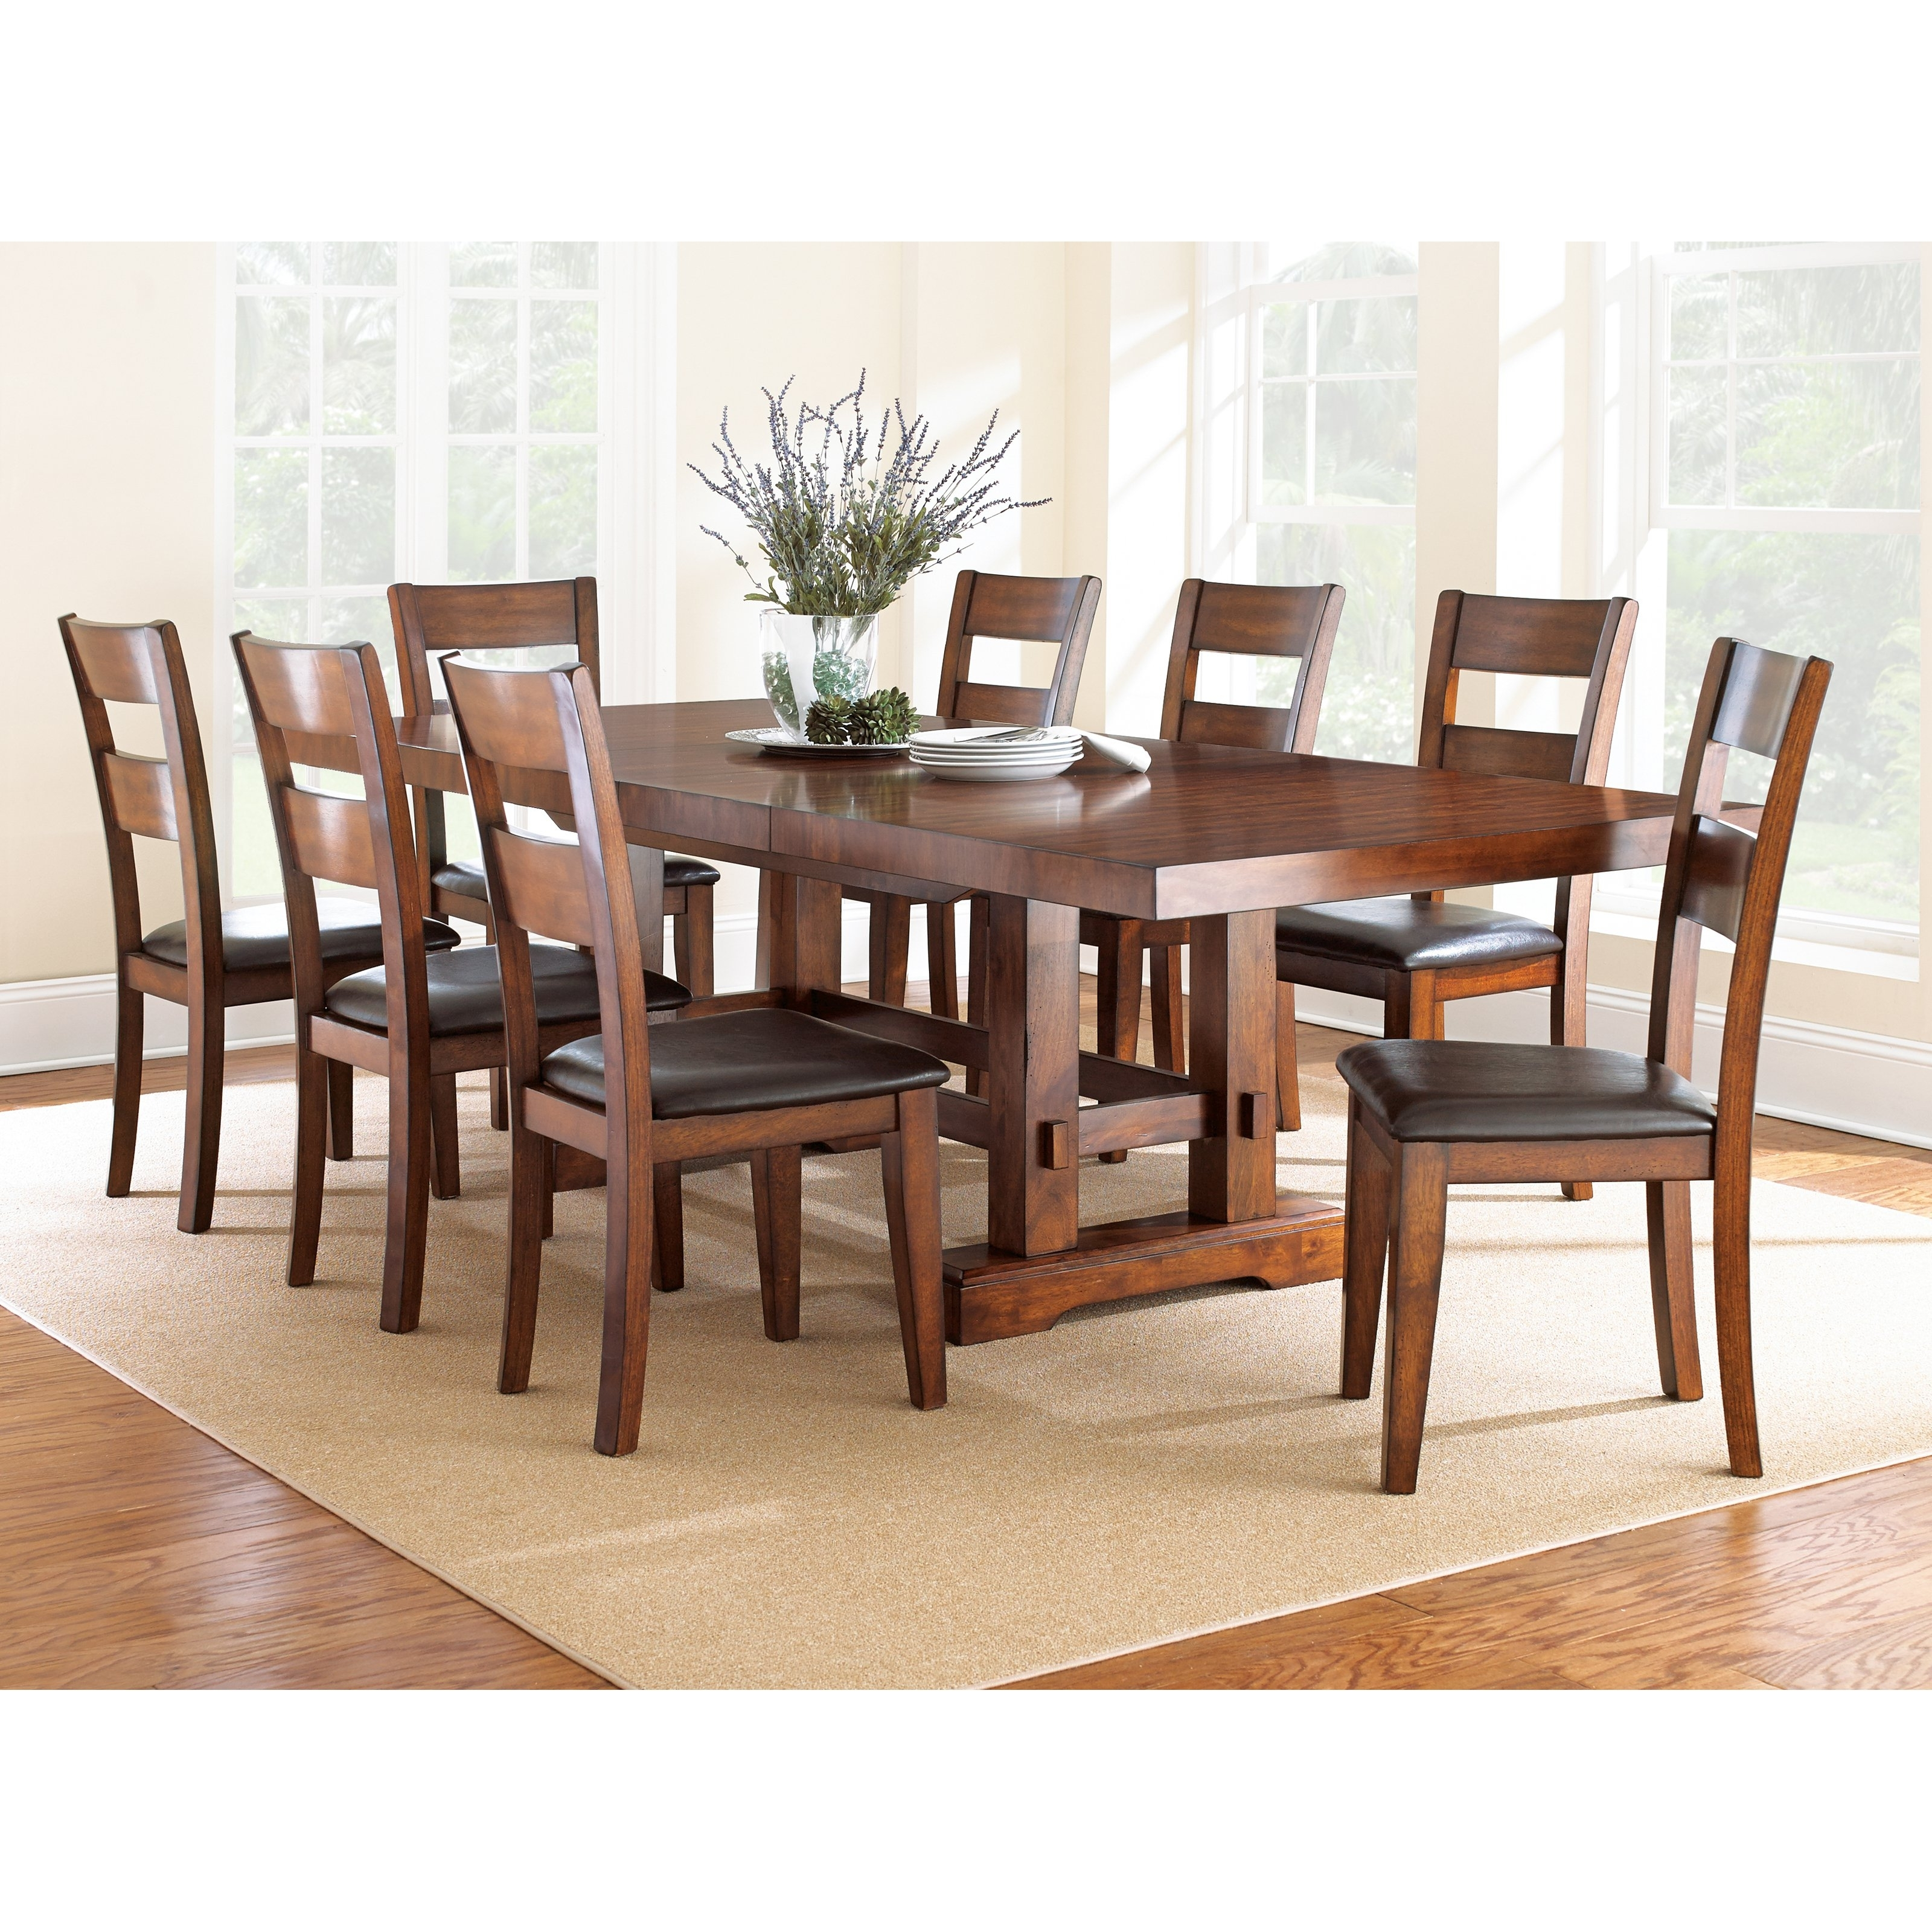 Dining Tables Set For 8 Intended For Newest Steve Silver Zappa 9 Piece Dining Table Set Medium Matching Bar (View 10 of 25)